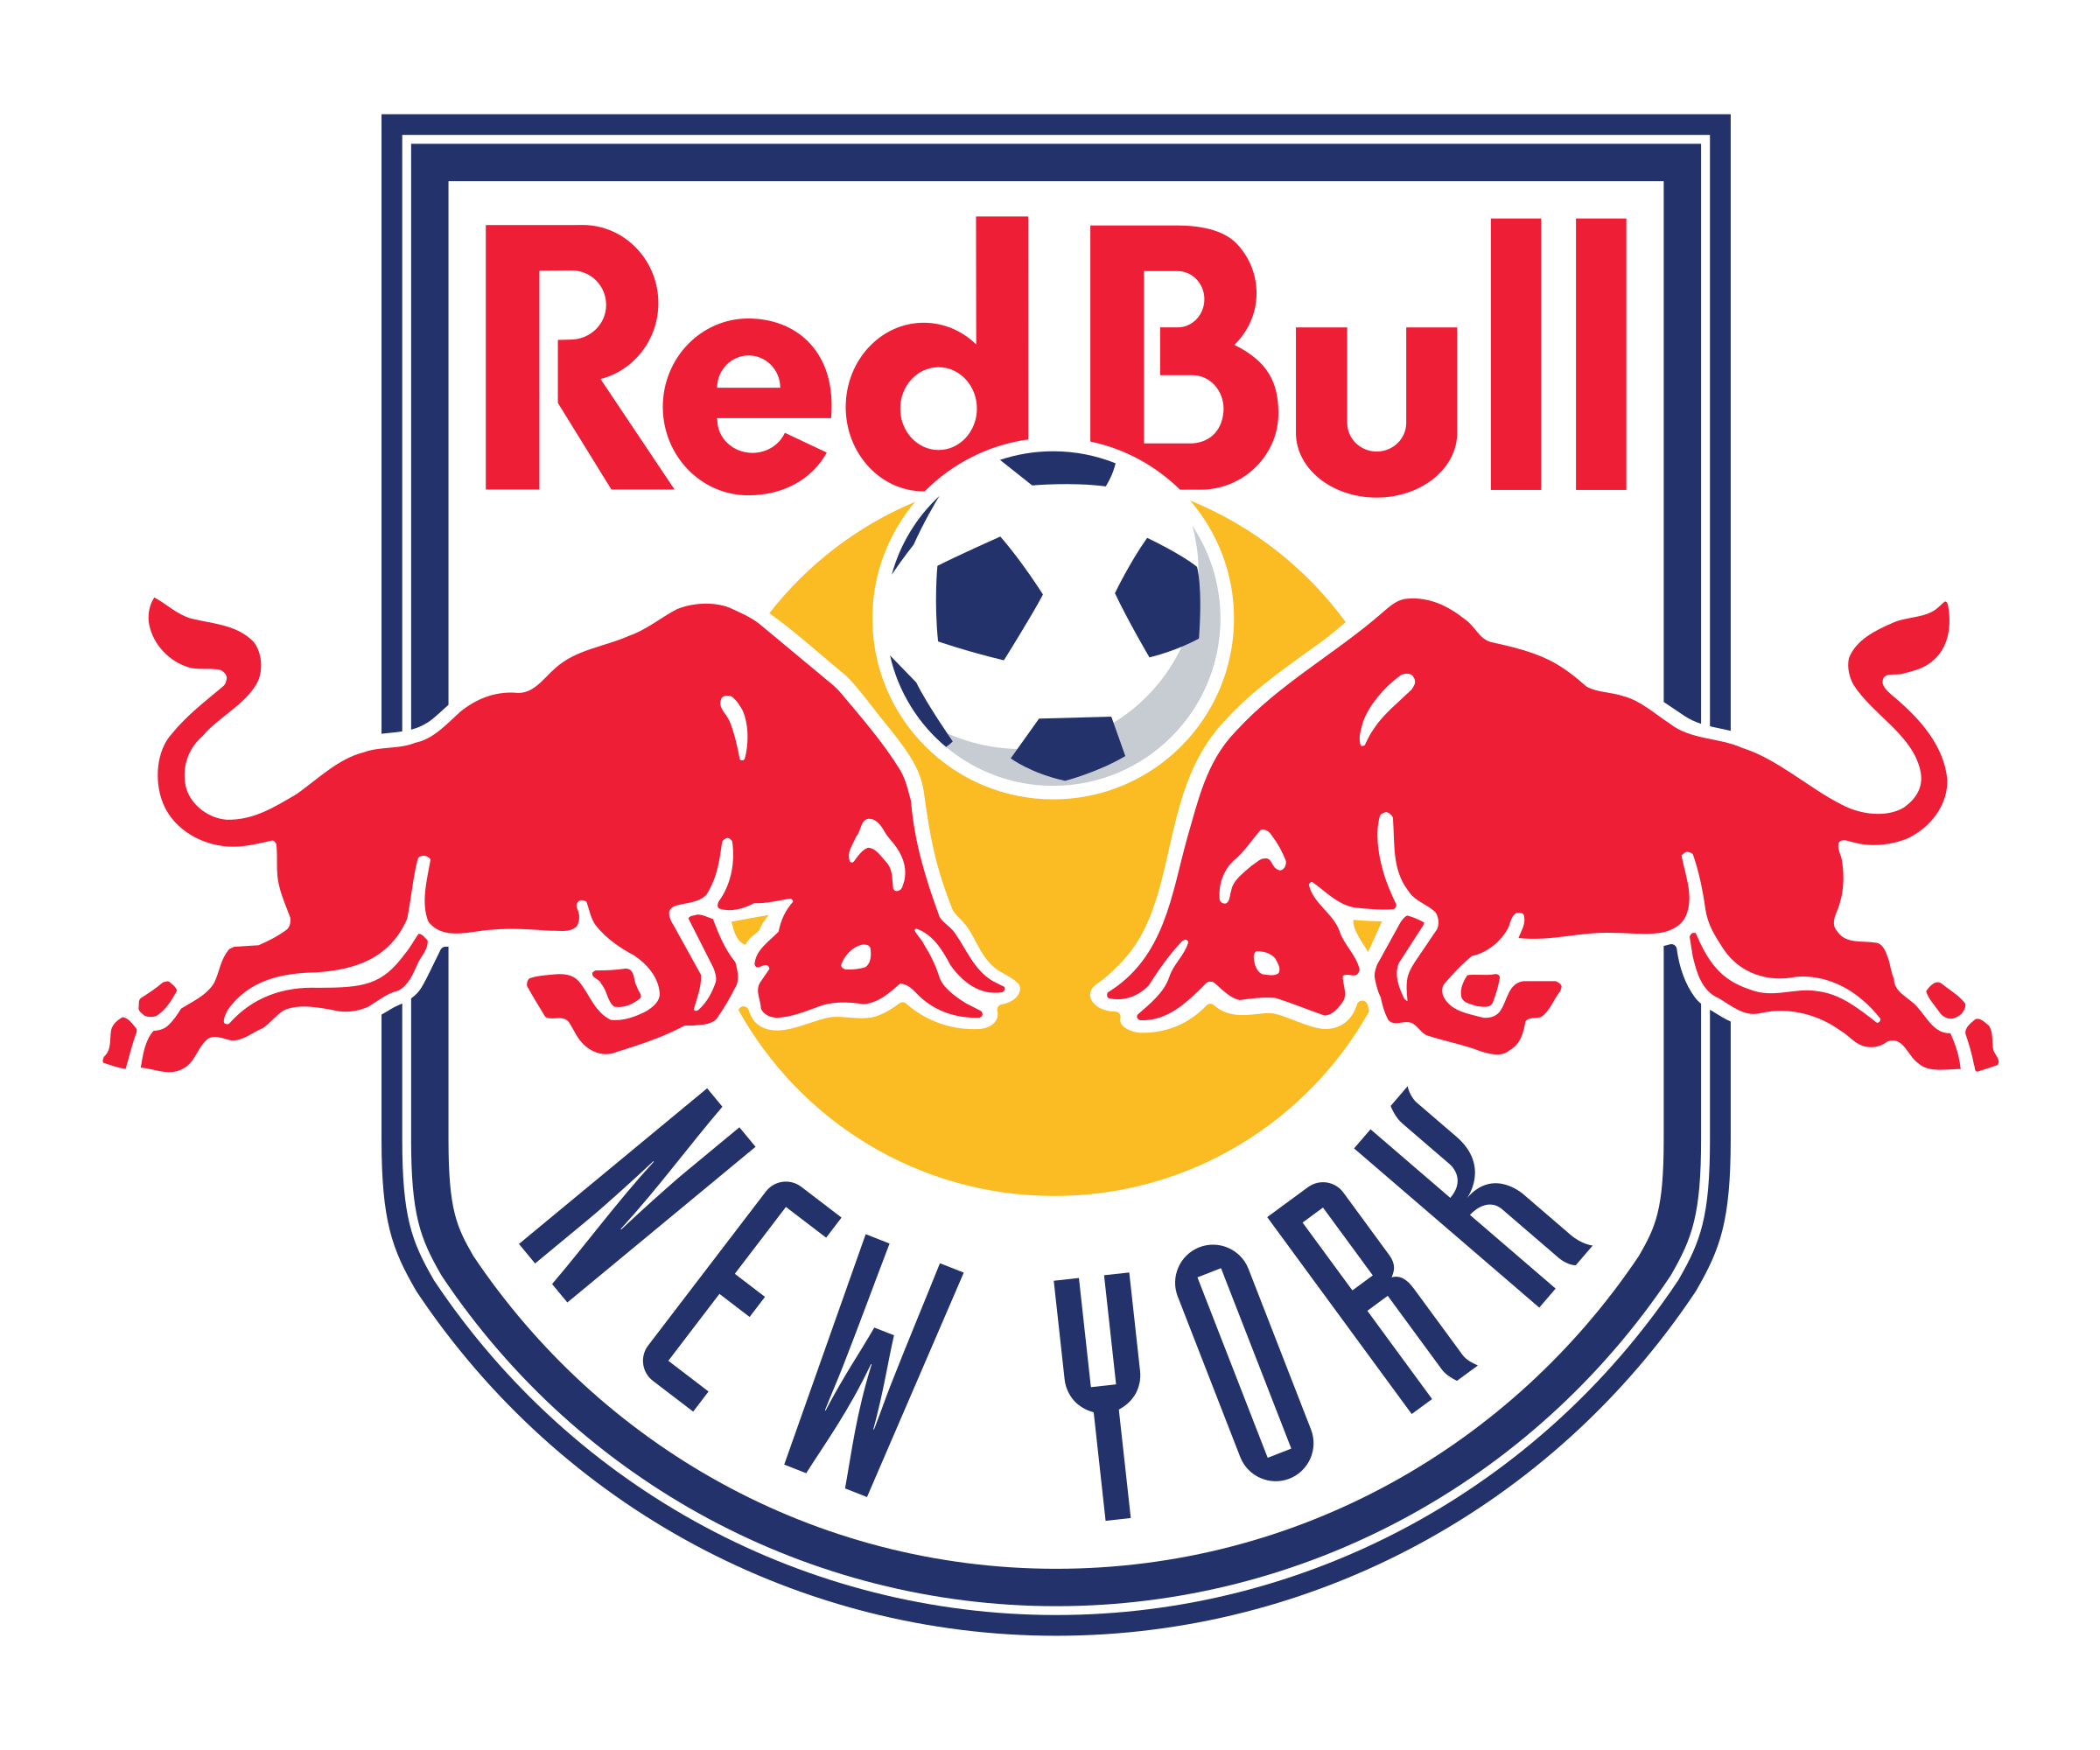 New York Red Bulls Logo PNG Transparent & SVG Vector.